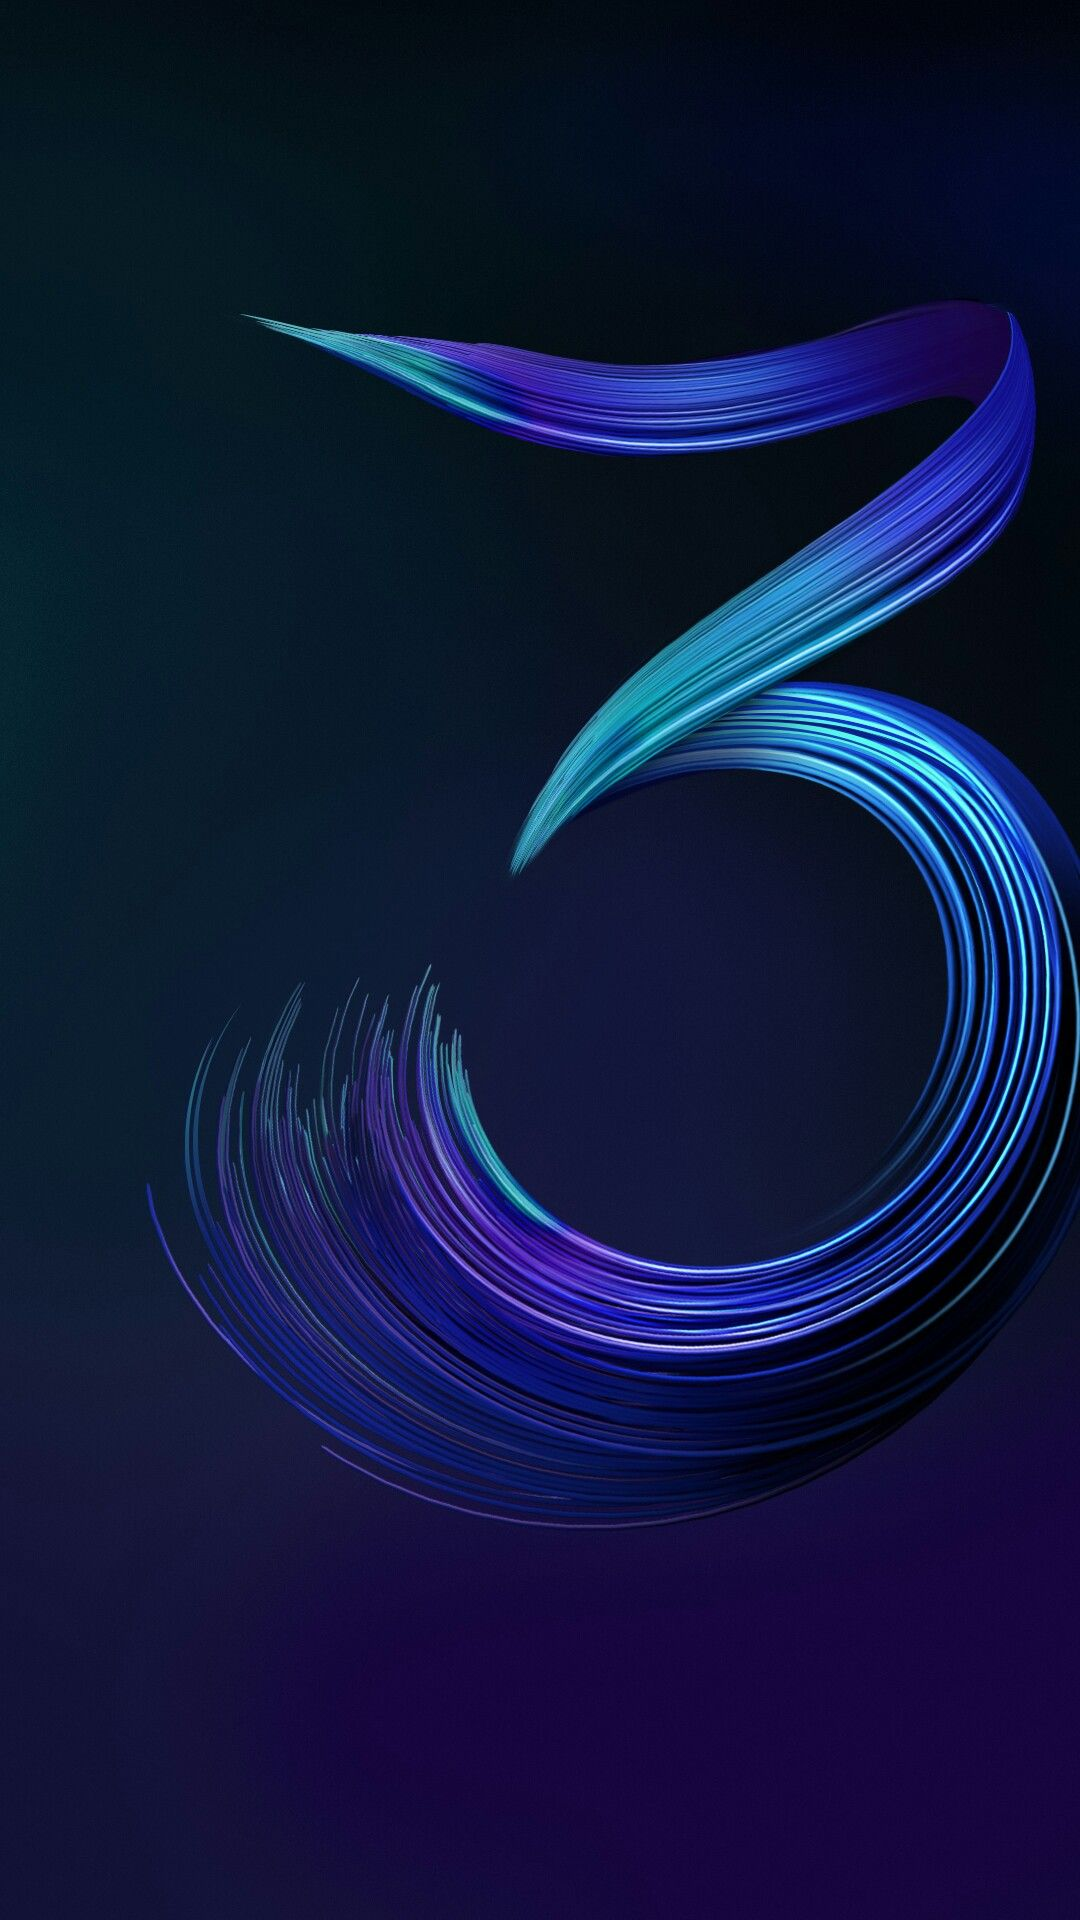 Cinema 4d wallpaper for android